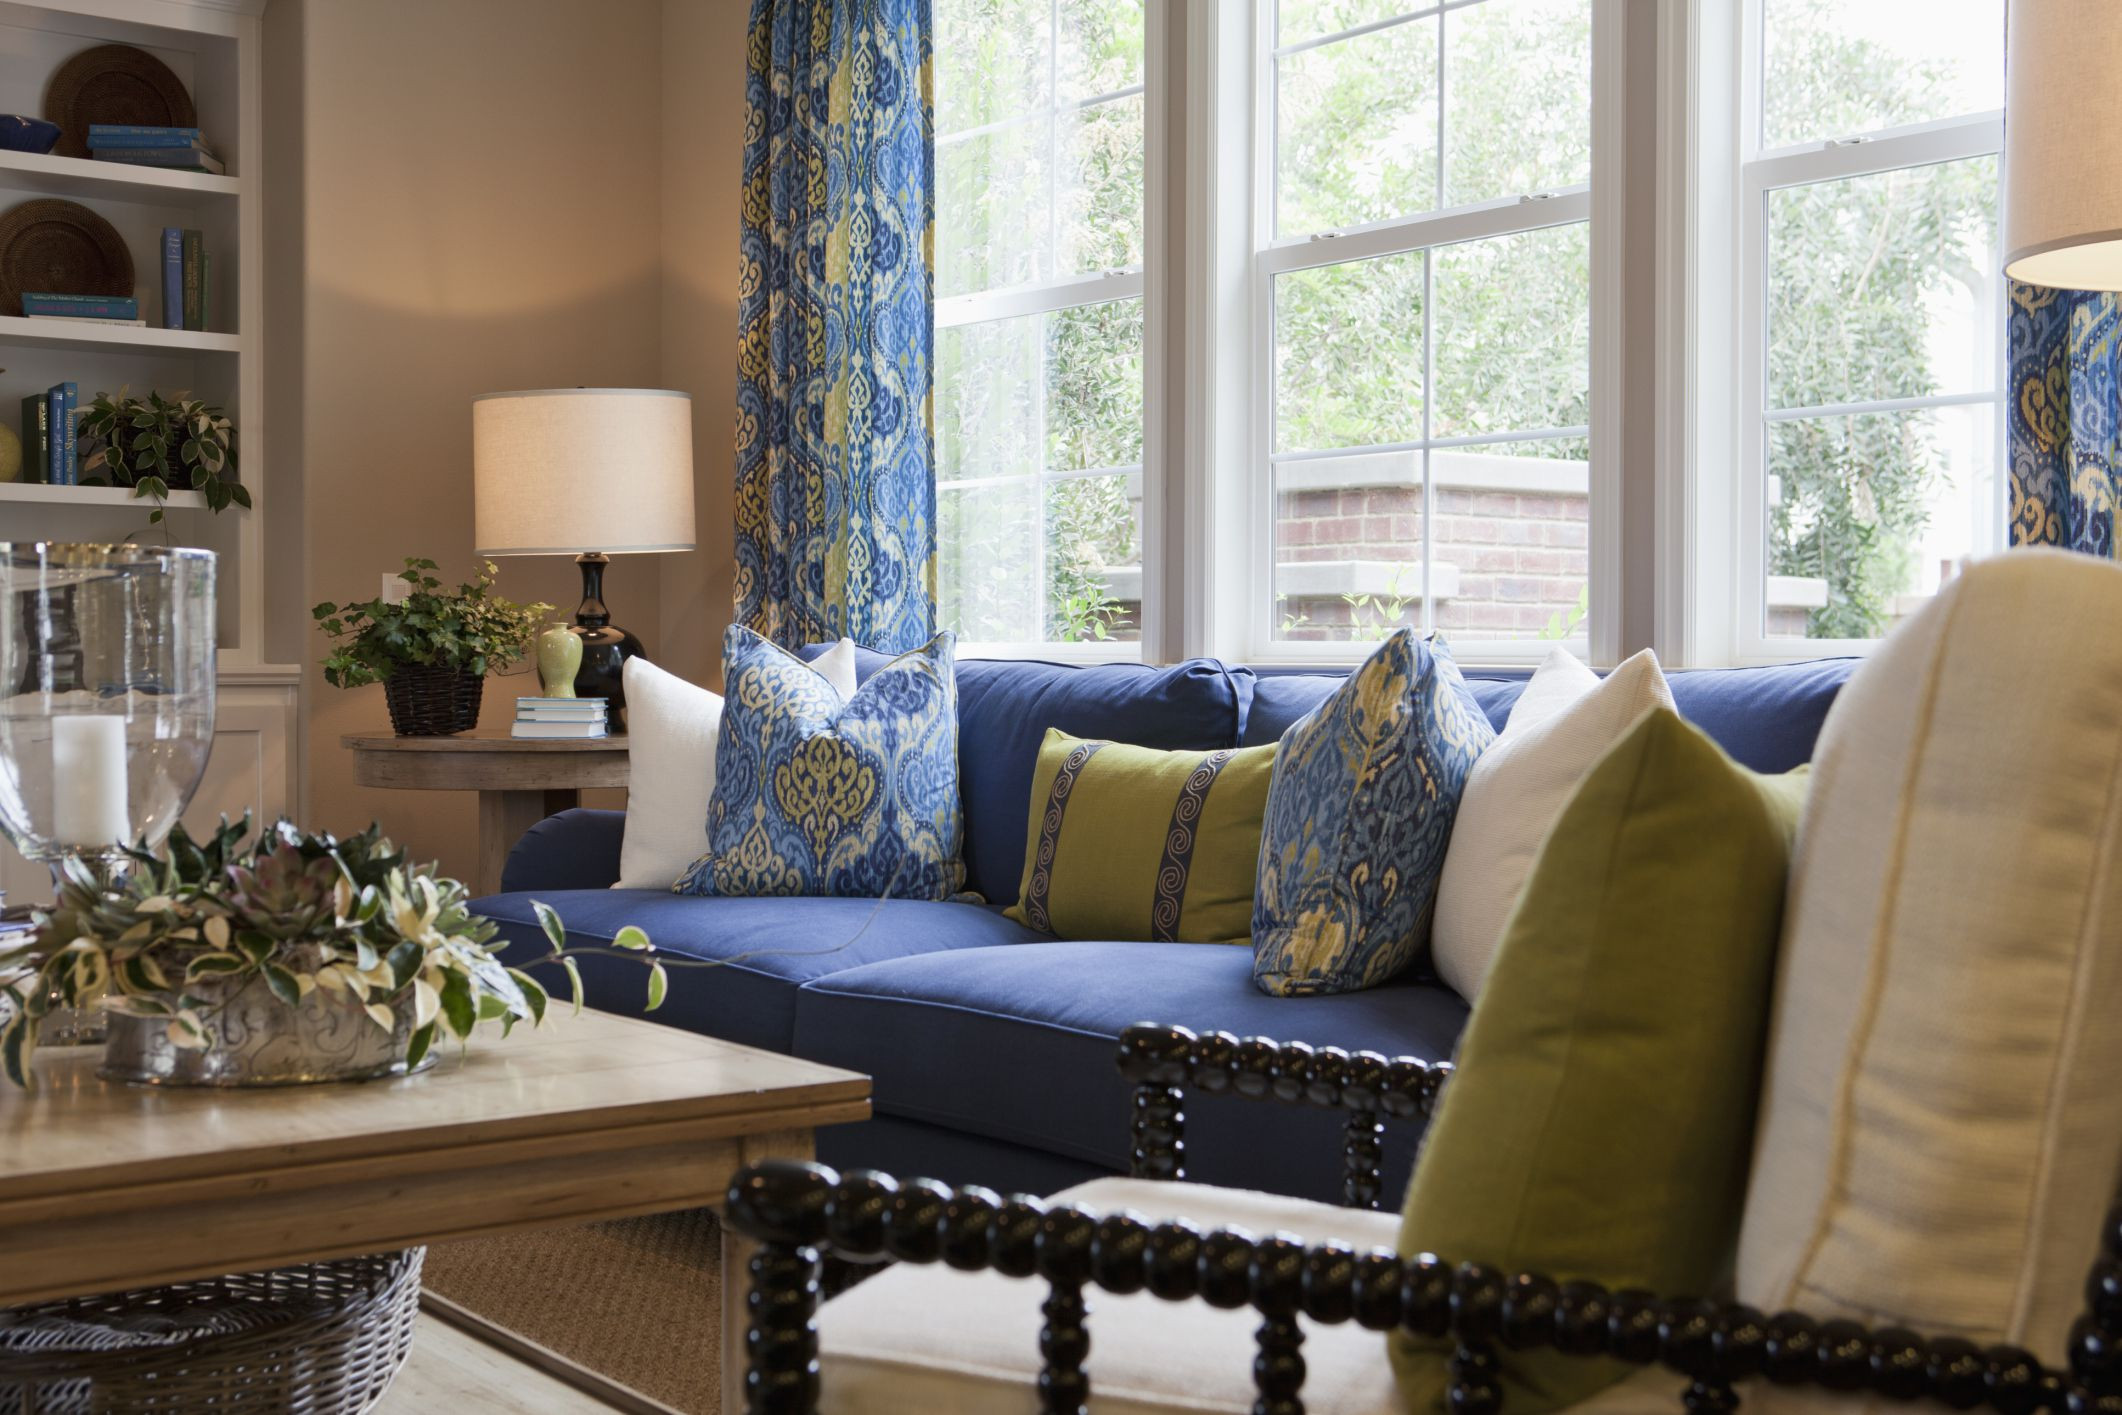 Best ideas about Decor Ideas For Family Room . Save or Pin Living Room Do s and Don ts Now.